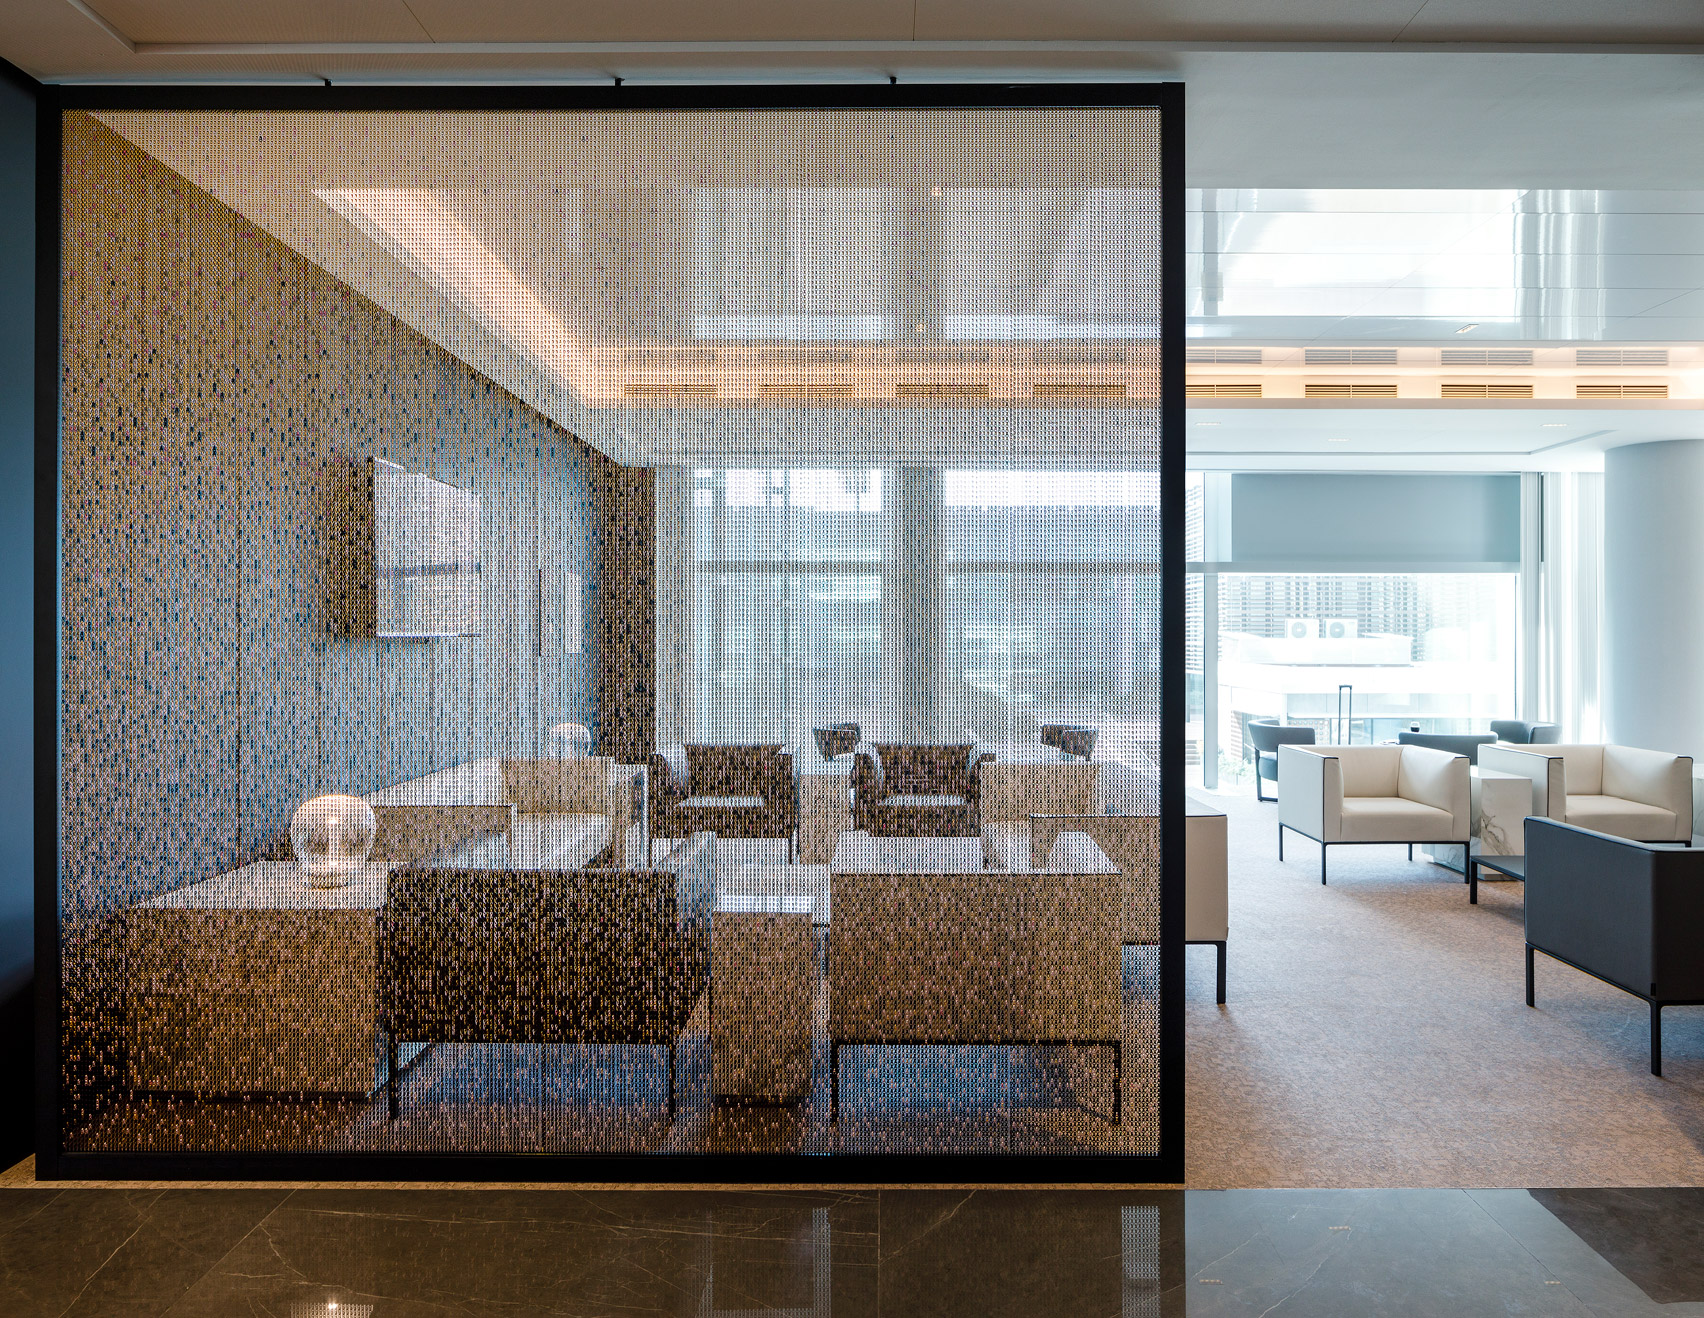 Kriskadecor installed at Pau Casals VIP lounge by efebearquitectur